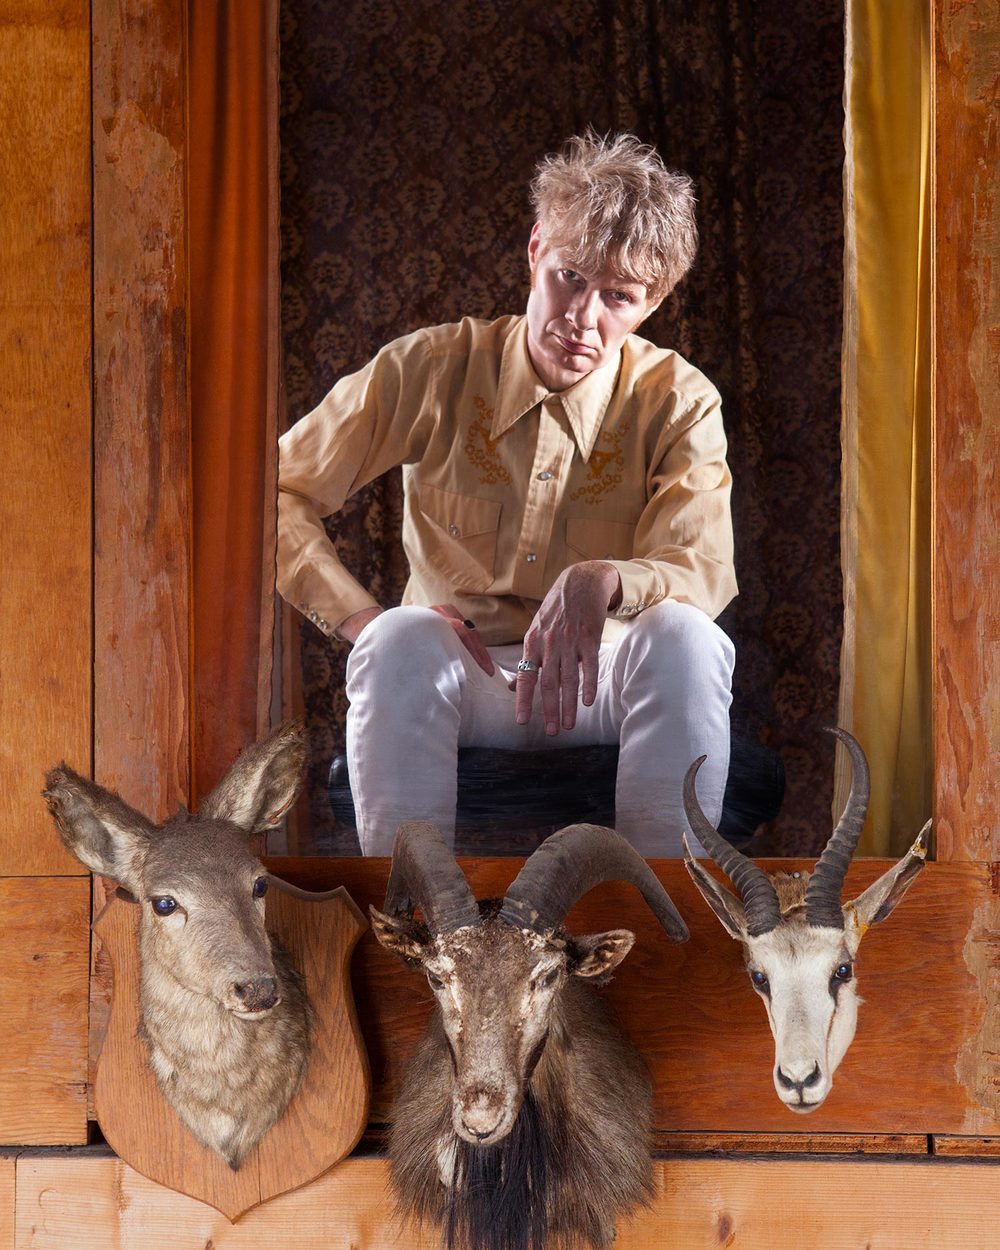 JG Thirlwell, Vice Magazine